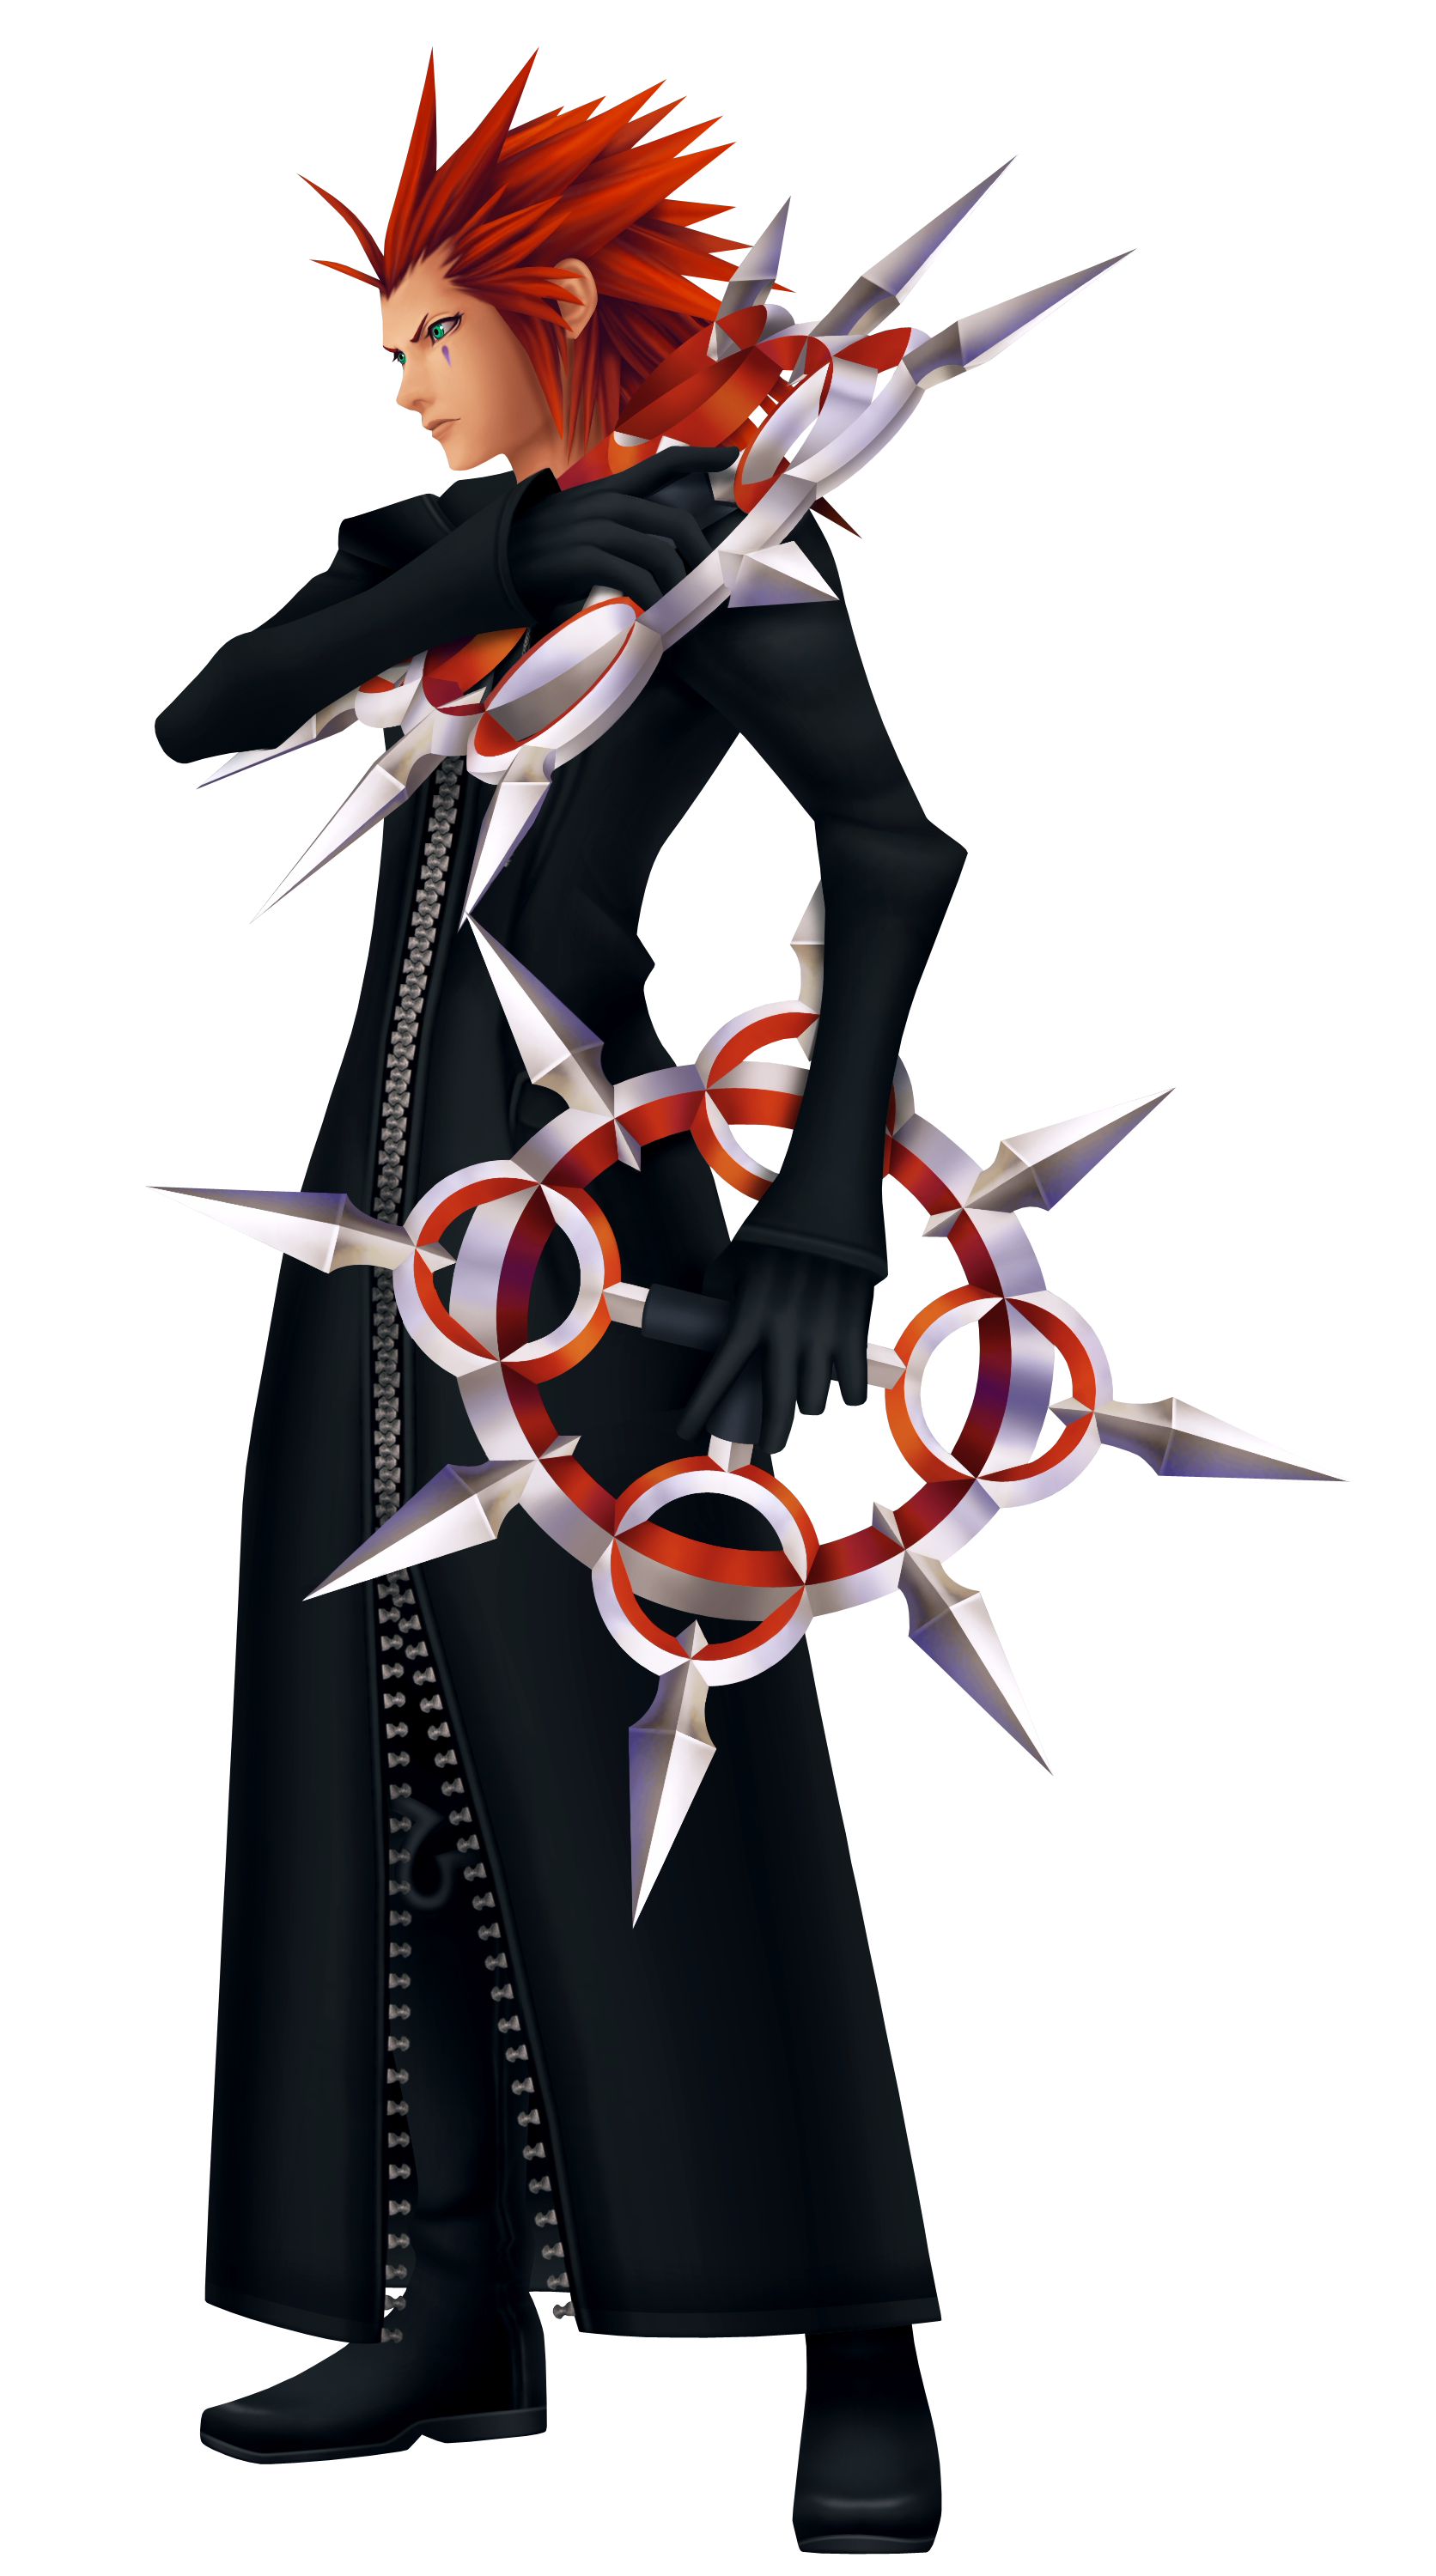 Axel (Kingdom Hearts) | VS Battles Wiki | FANDOM powered by